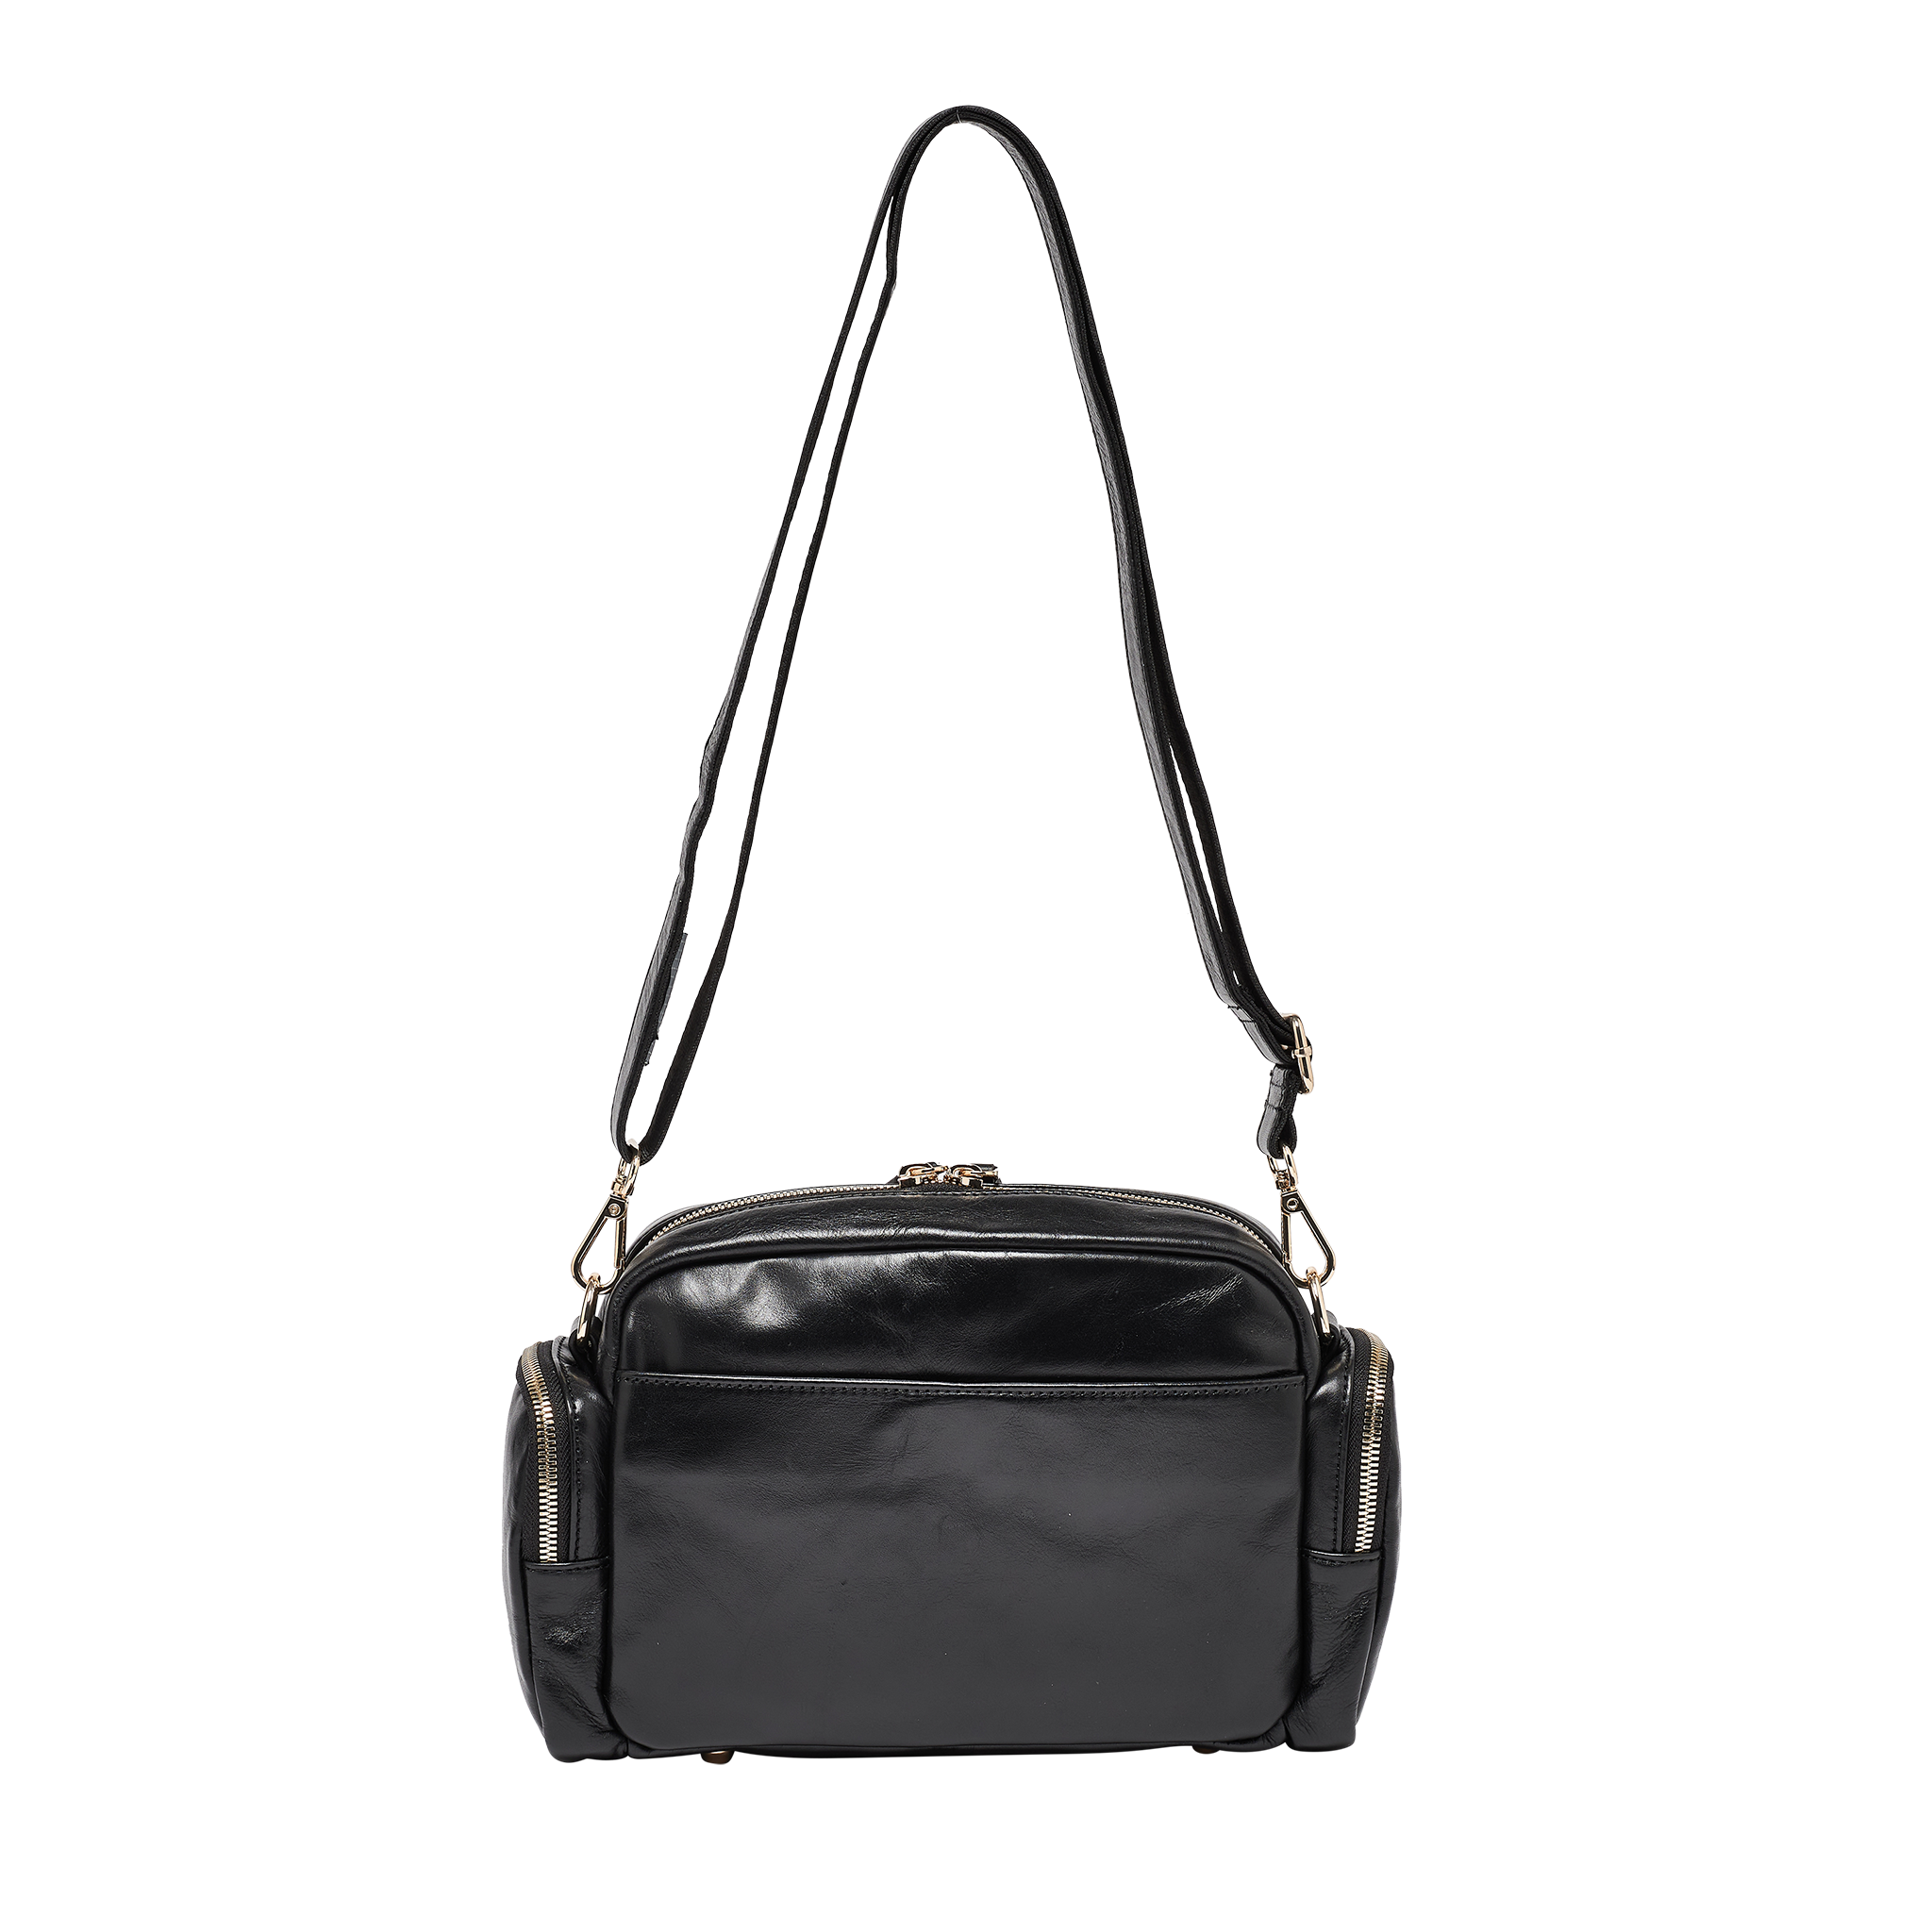 Greta Quilted Black Leather Cross Body Bag - Preorder For Mid September Delivery